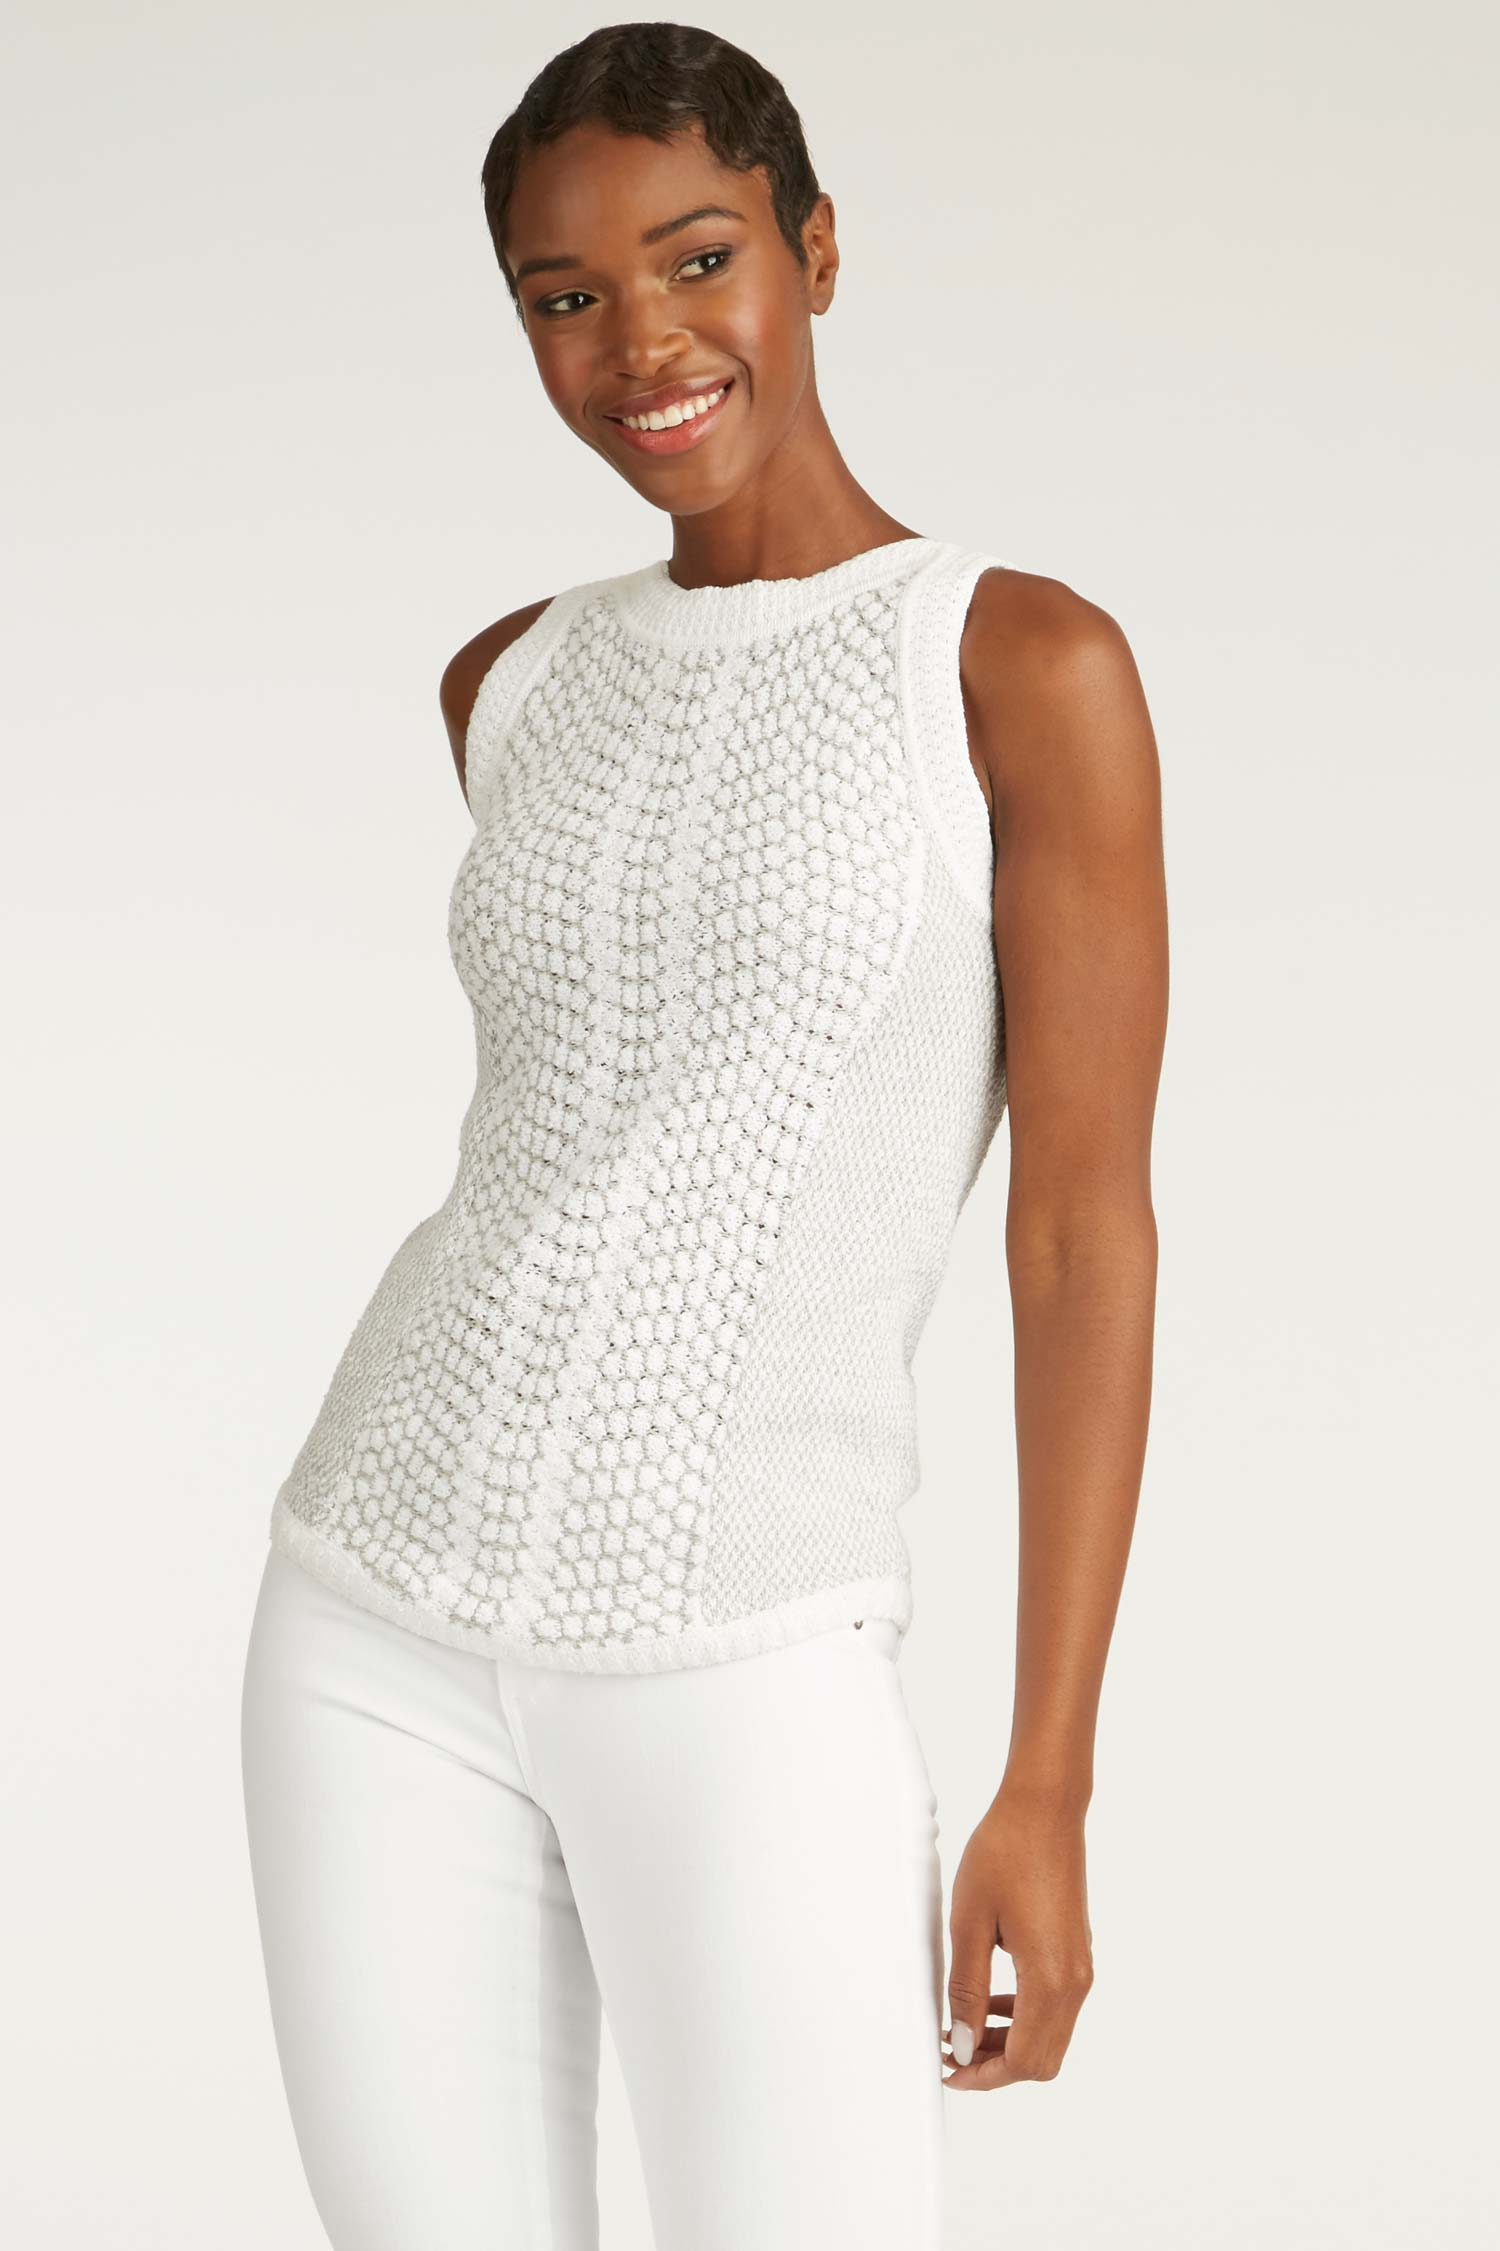 Womens Organic Cotton Crochet + Knit Top | White Gray |  Indigenous